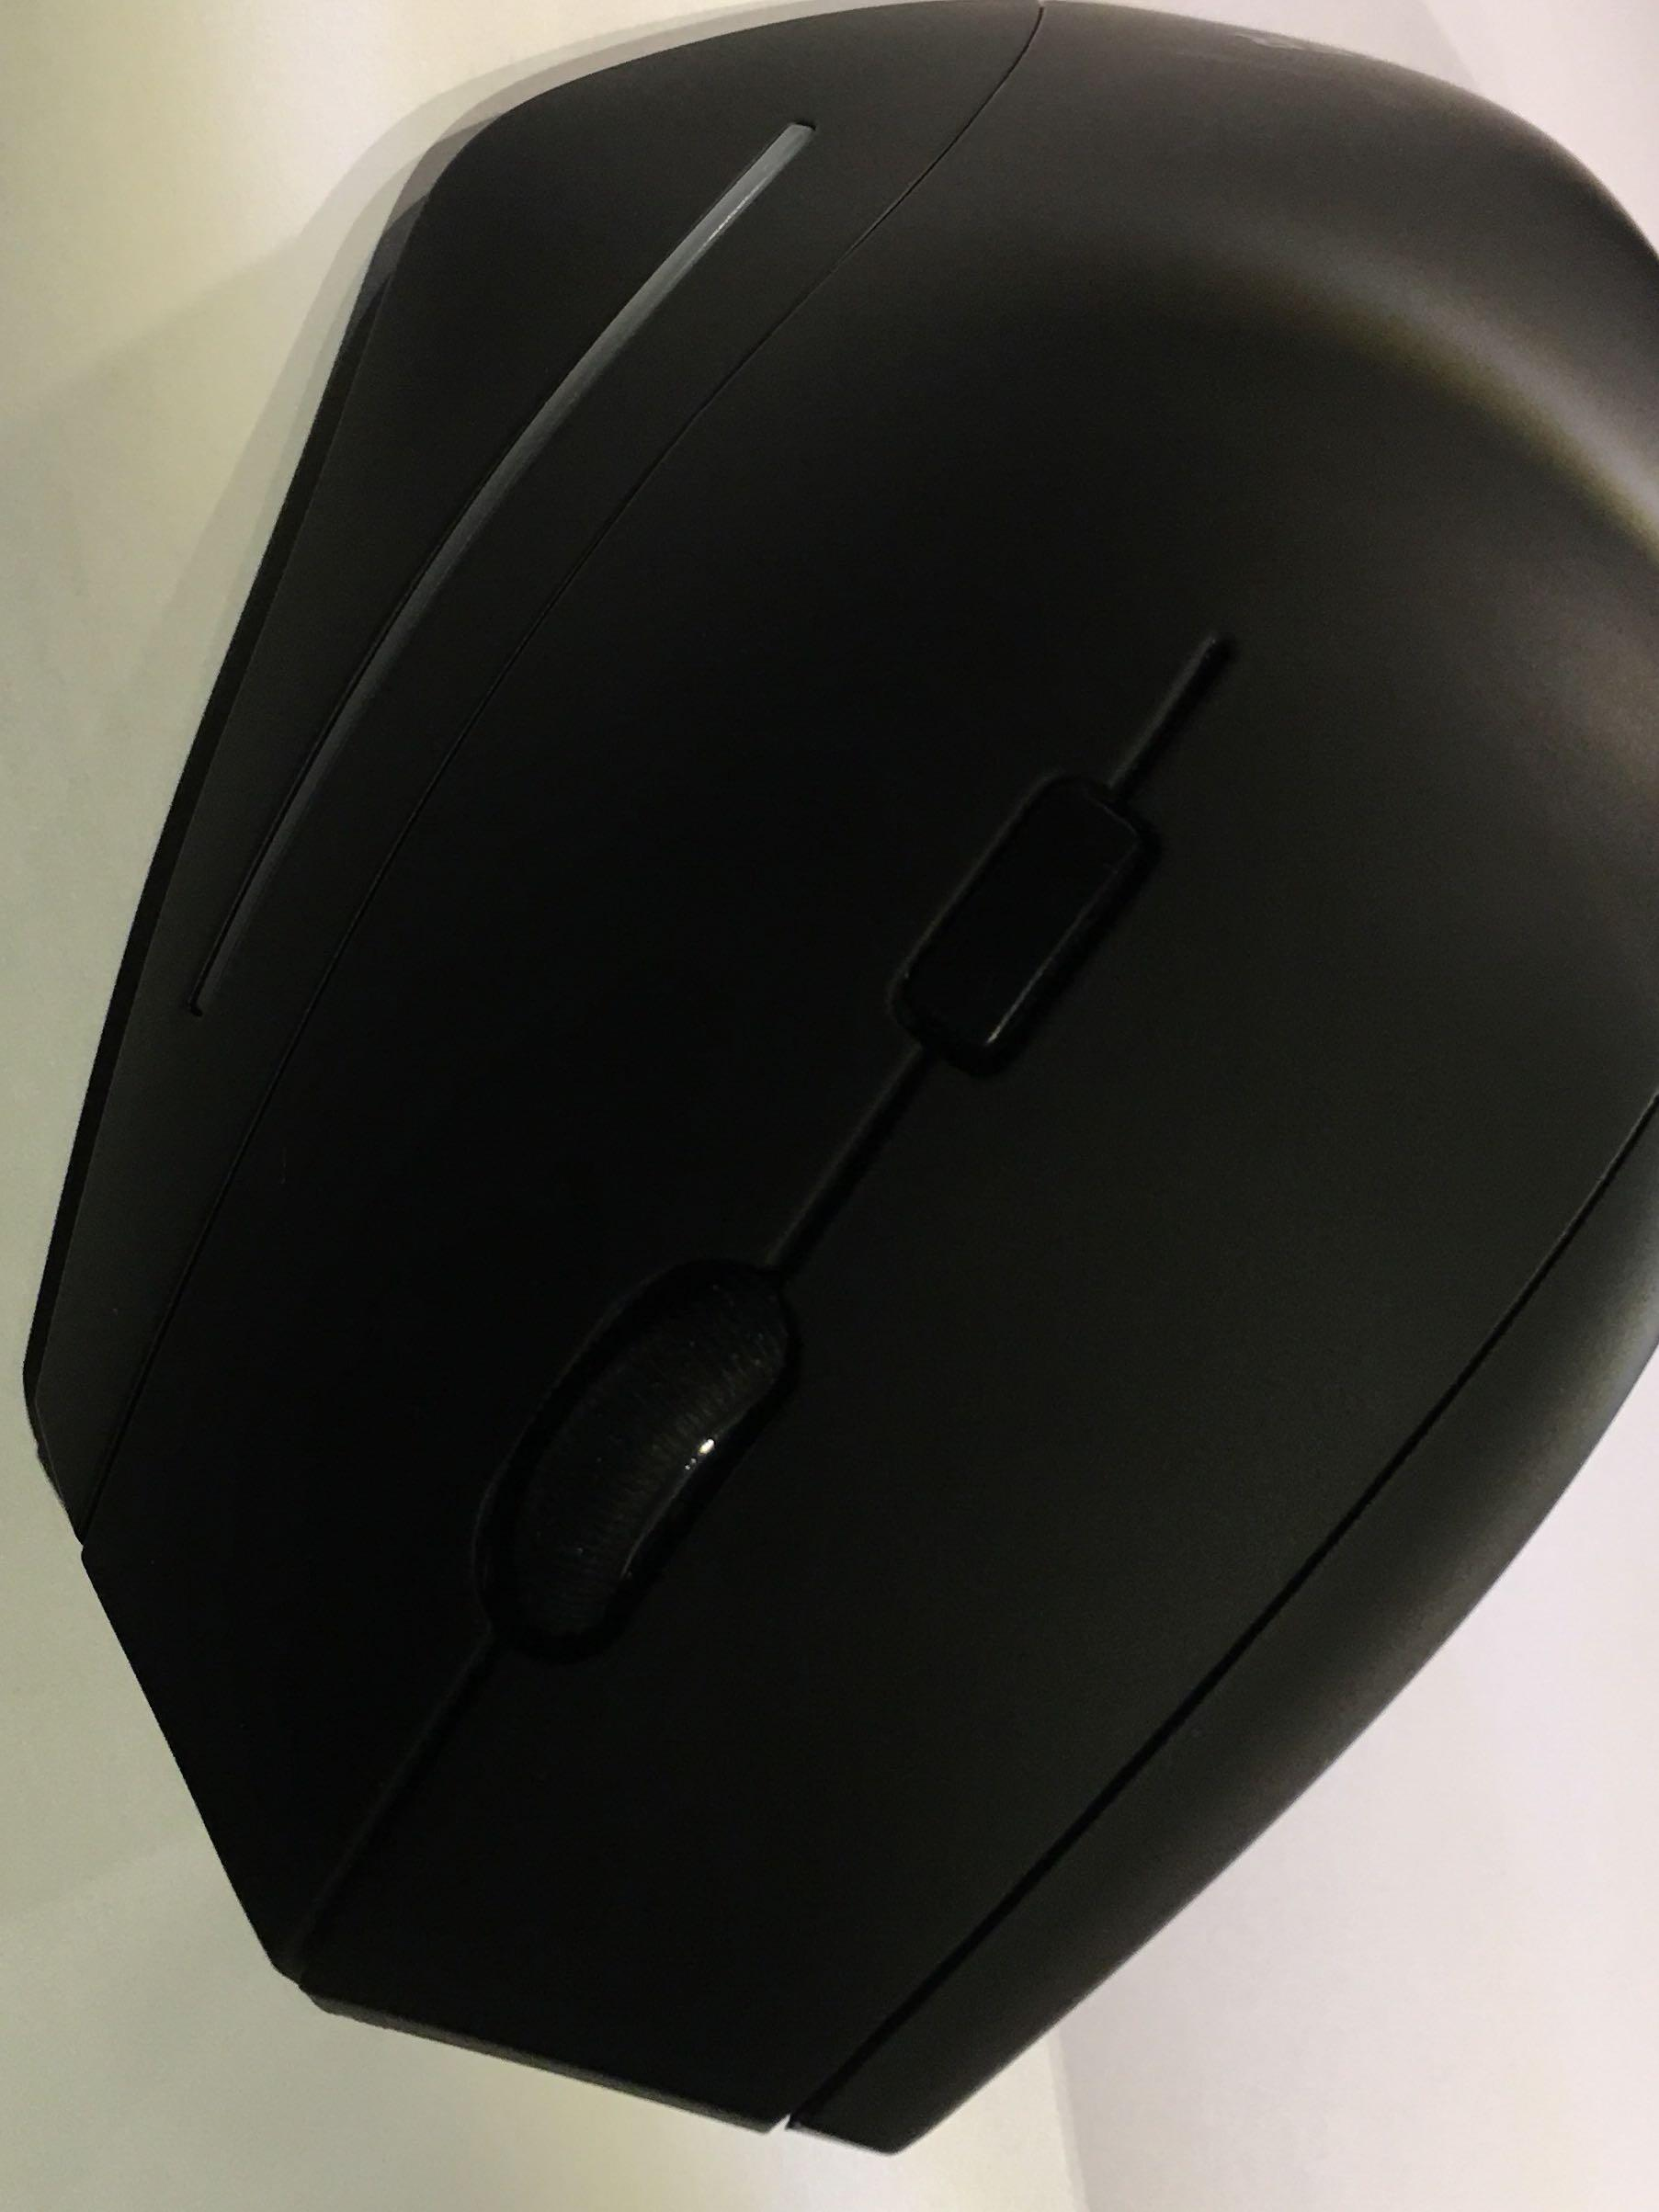 Anker wireless vertical mouse, Electronics, Computer Parts